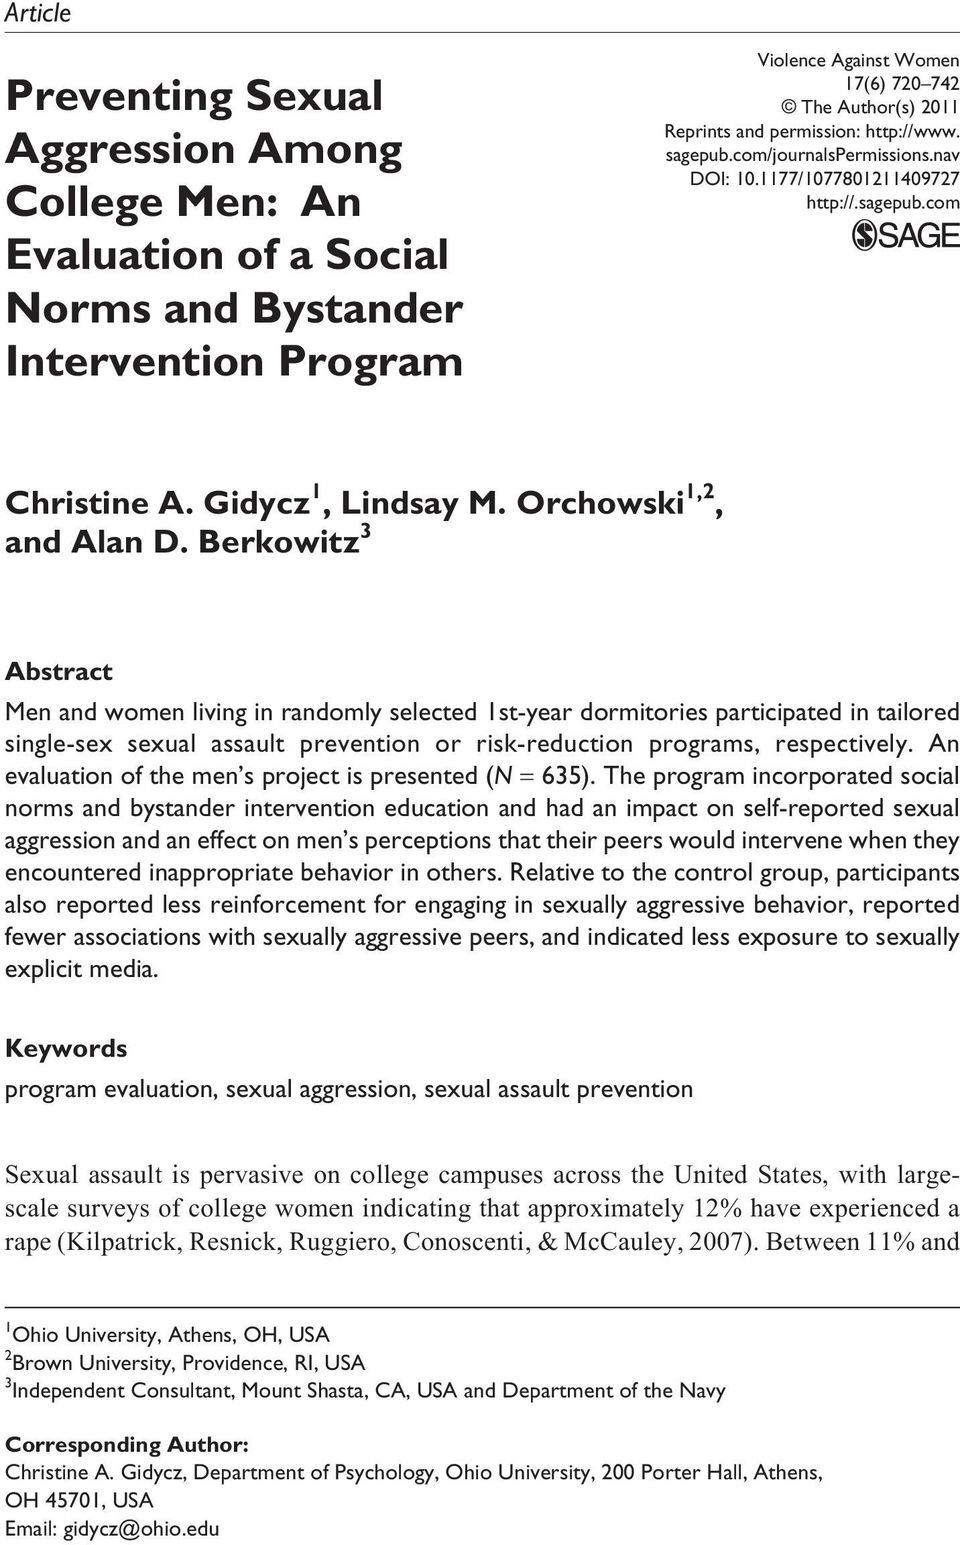 2011 Reprints and permission: http://www. sagepub.com/journalspermissions.nav DOI: 10.1177/1077801211409727 http://.sagepub.com Christine A. Gidycz 1, Lindsay M. Orchowski 1,2, and Alan D.